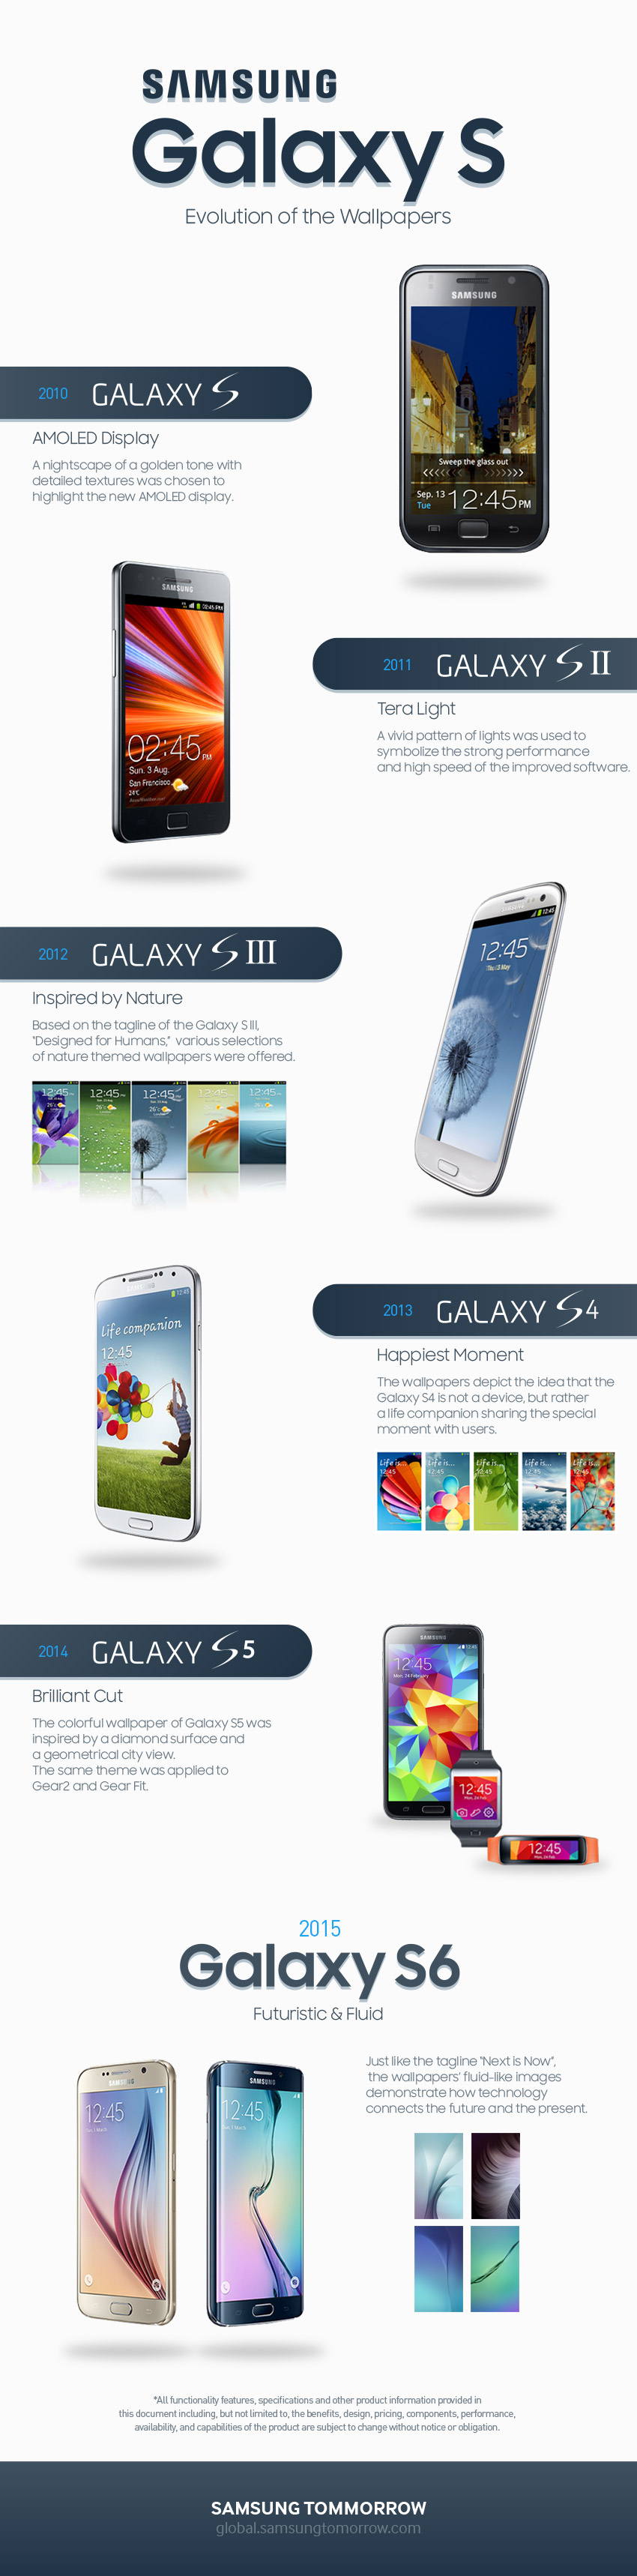 [Infographic] The Iconic Wallpapers of the Galaxy S Series